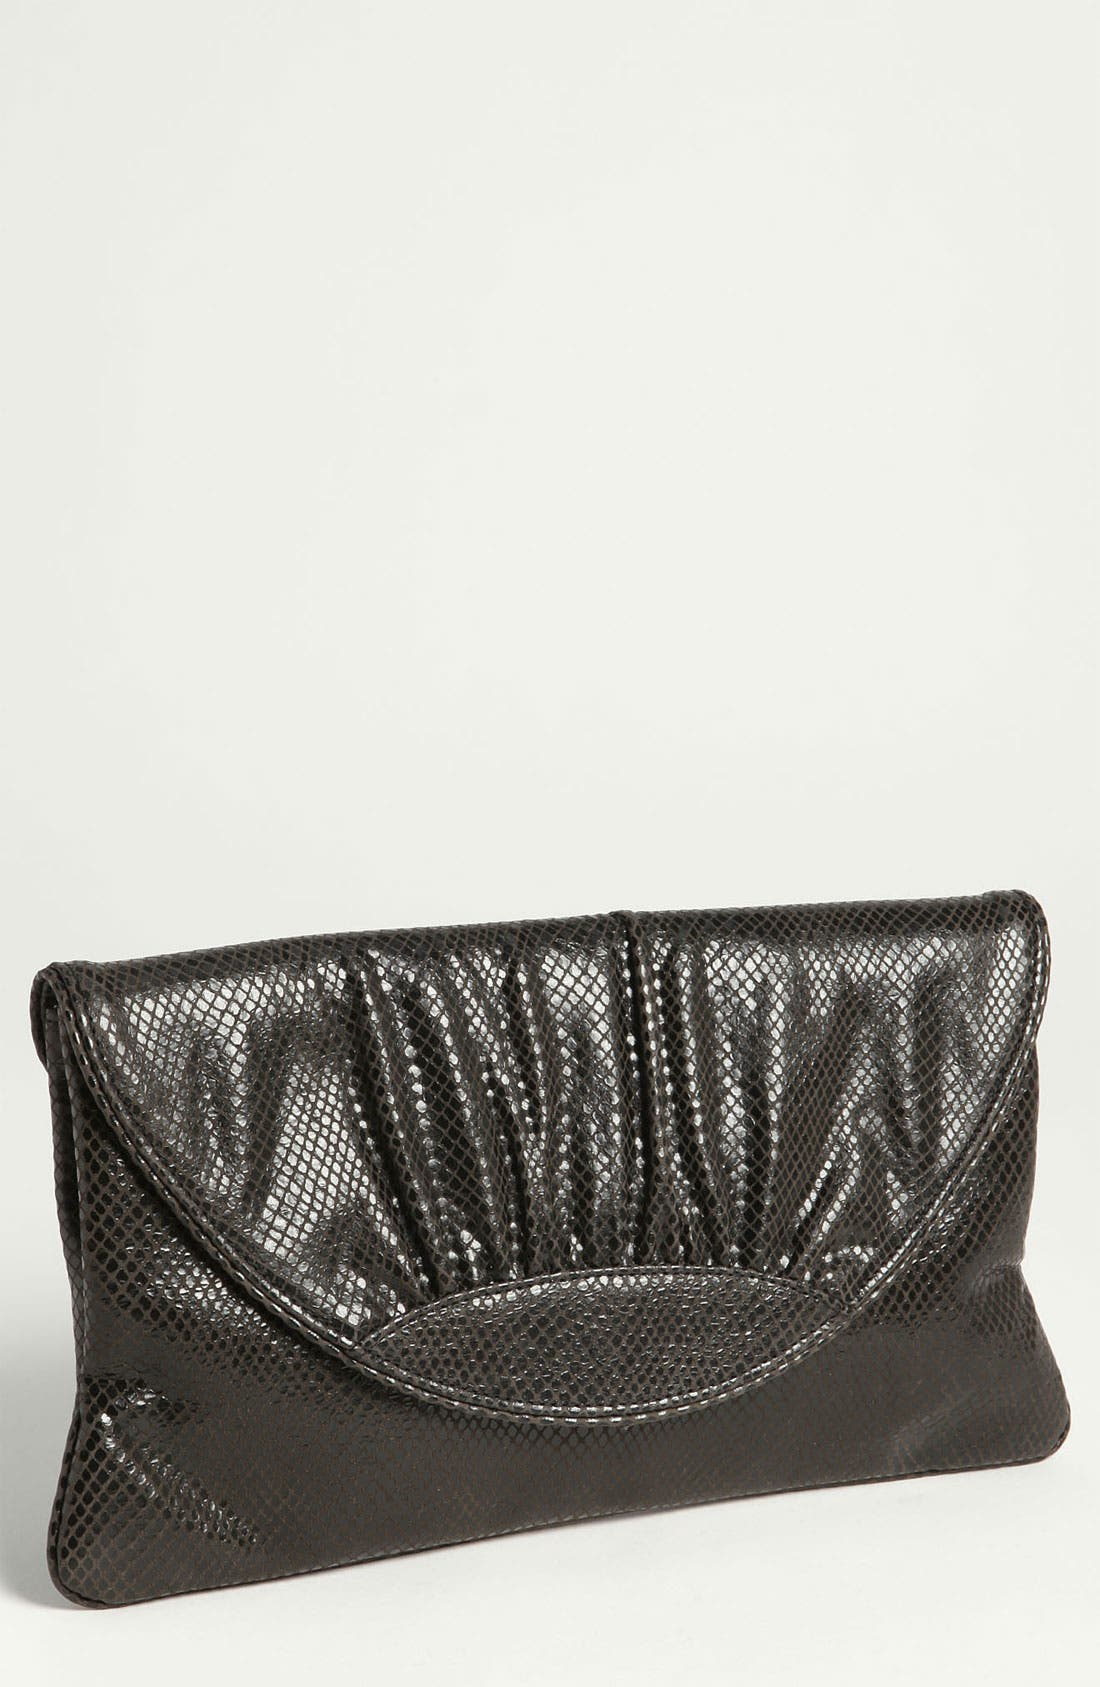 'Ava' Snake Embossed Clutch,                         Main,                         color, Black